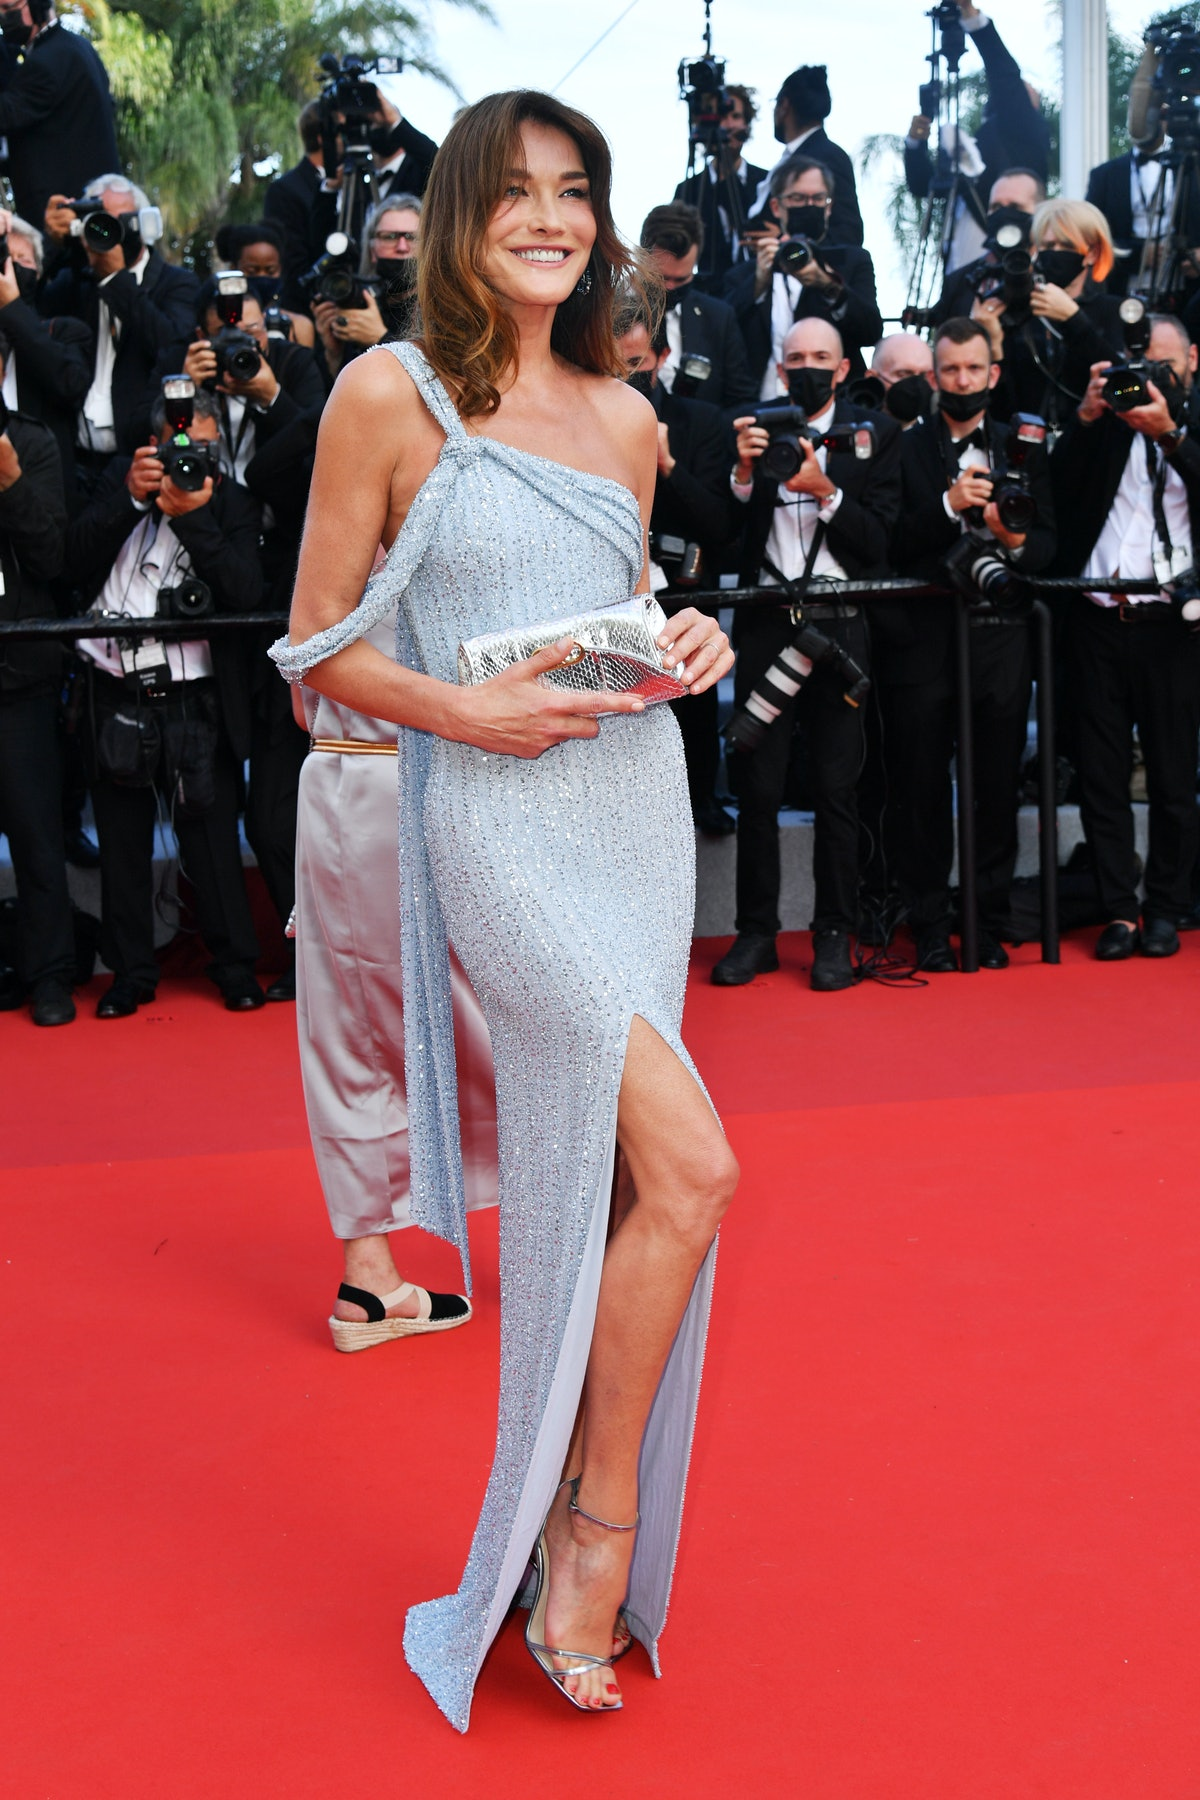 """CANNES, FRANCE - JULY 06: Carla Bruni attends the """"Annette"""" screening and opening ceremony during the 74th annual Cannes Film Festival on July 06, 2021 in Cannes, France. (Photo by Dominique Charriau/WireImage)"""